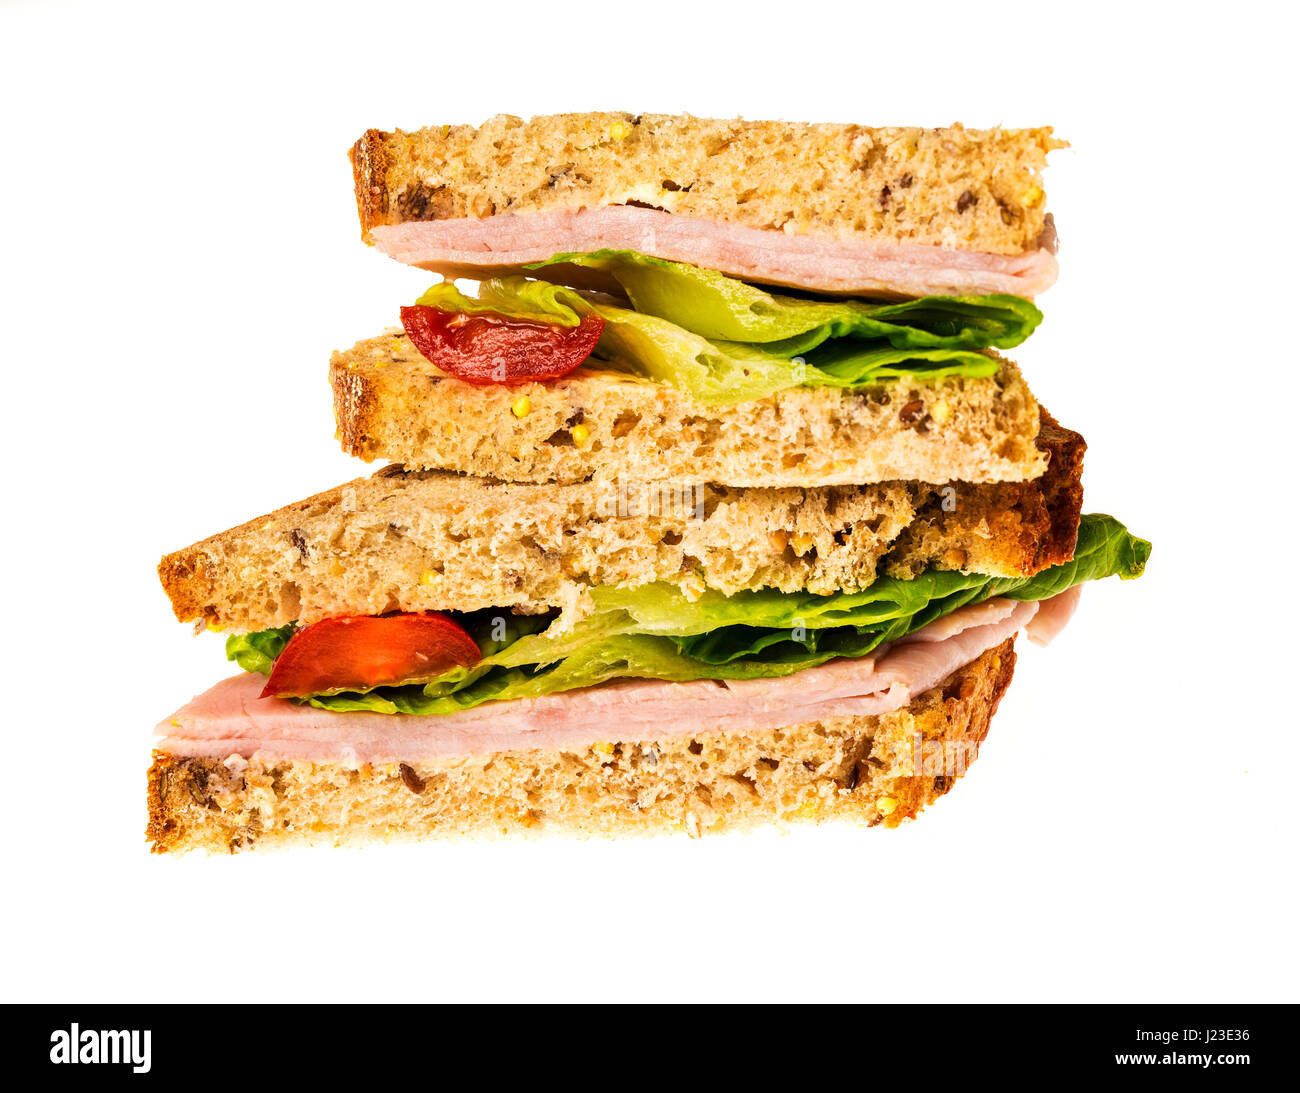 Home made ham, lettuce and tomato sandwich on brown bread - Stock Image